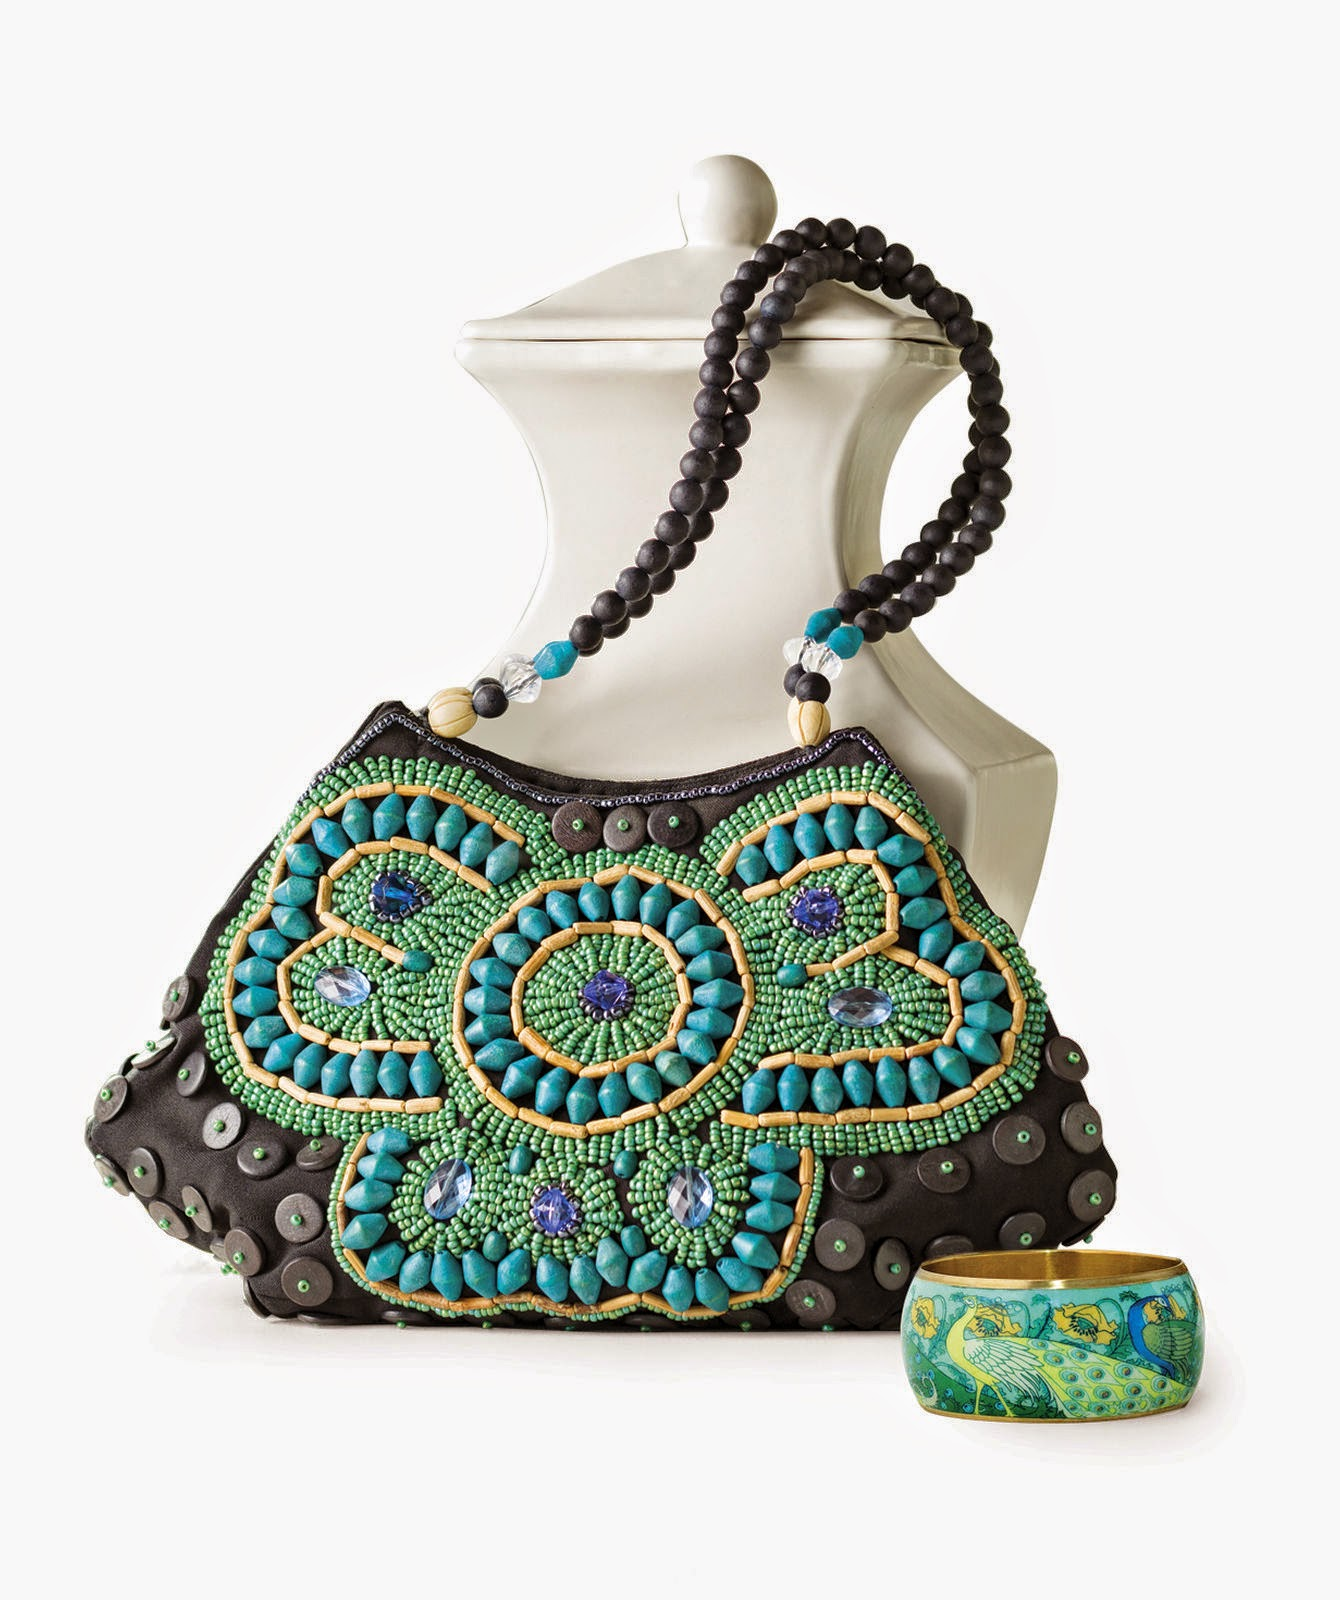 http://shop.unicefusa.org/ornate-beaded-handbag/1UGG1028.html